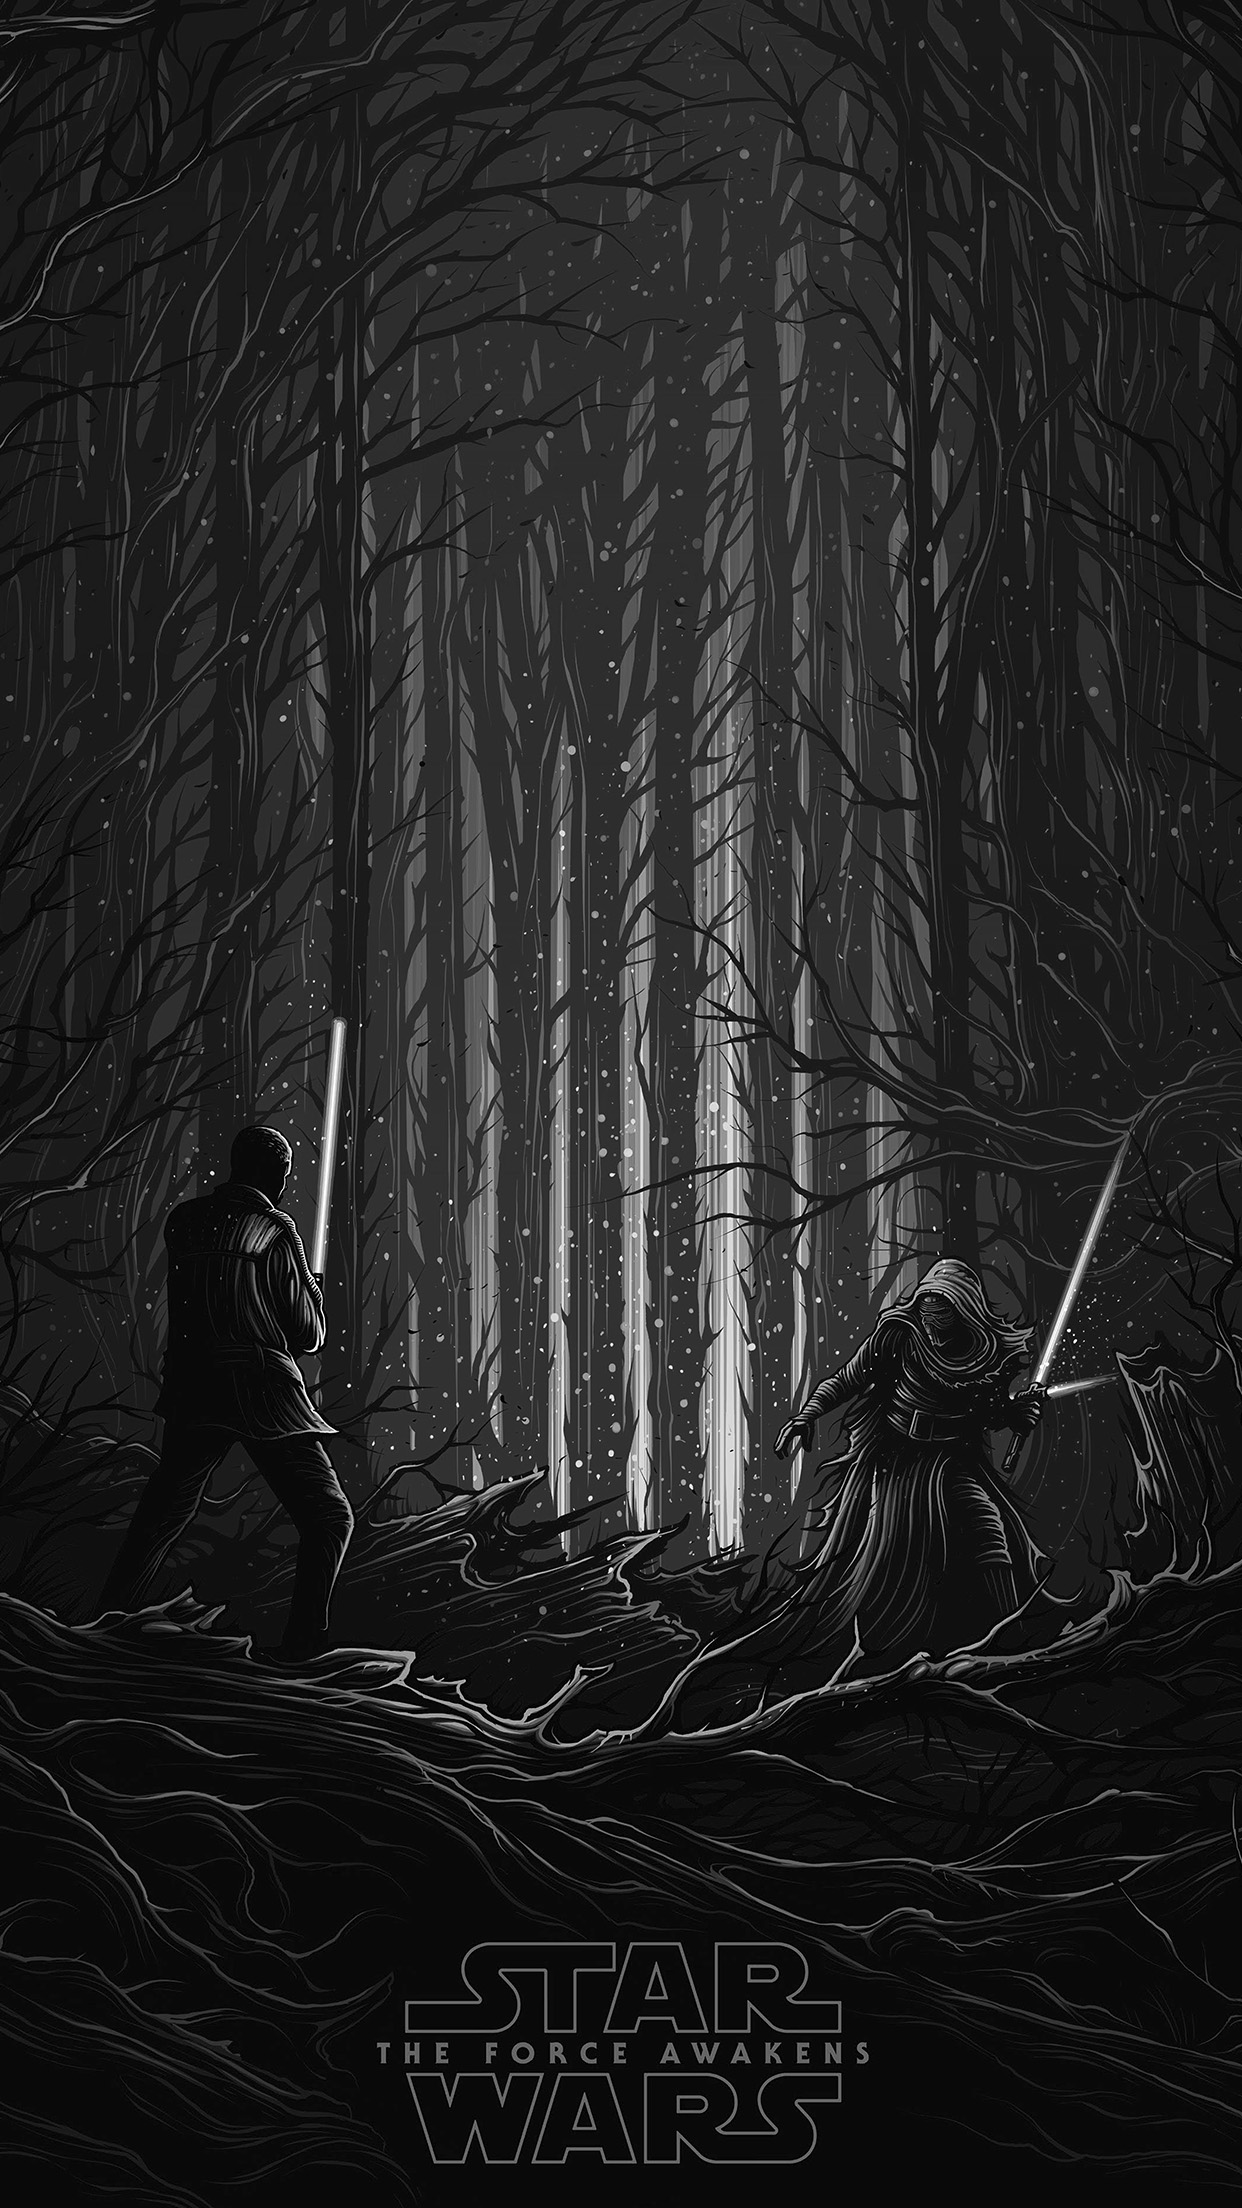 starwars illustration bw dark art film android wallpaper android hd wallpapers